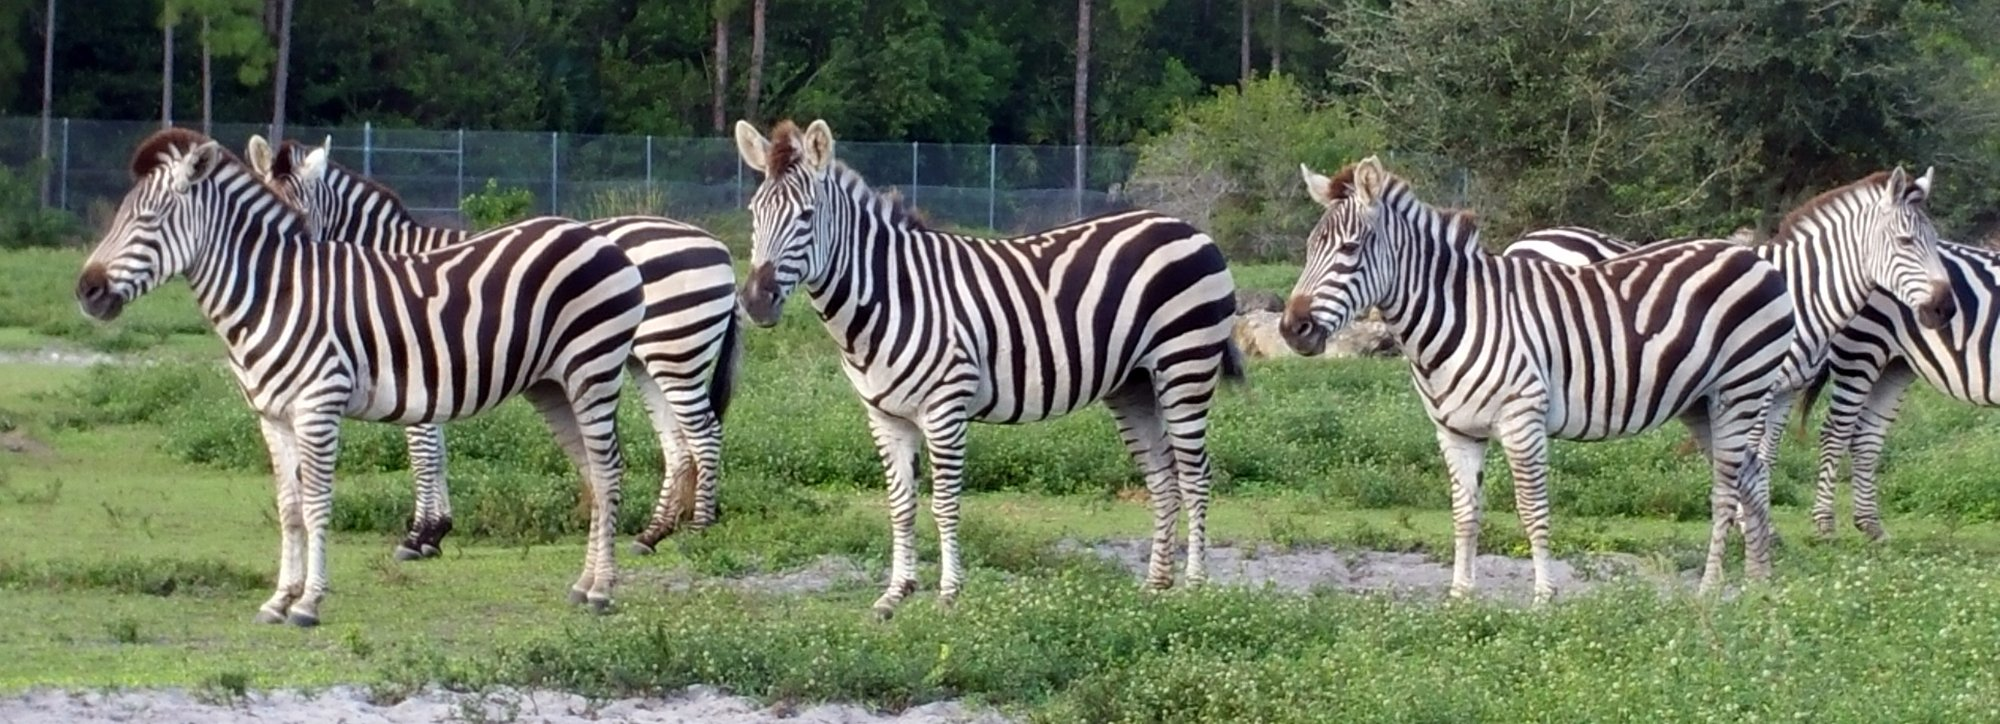 zebras-lion-country-safari